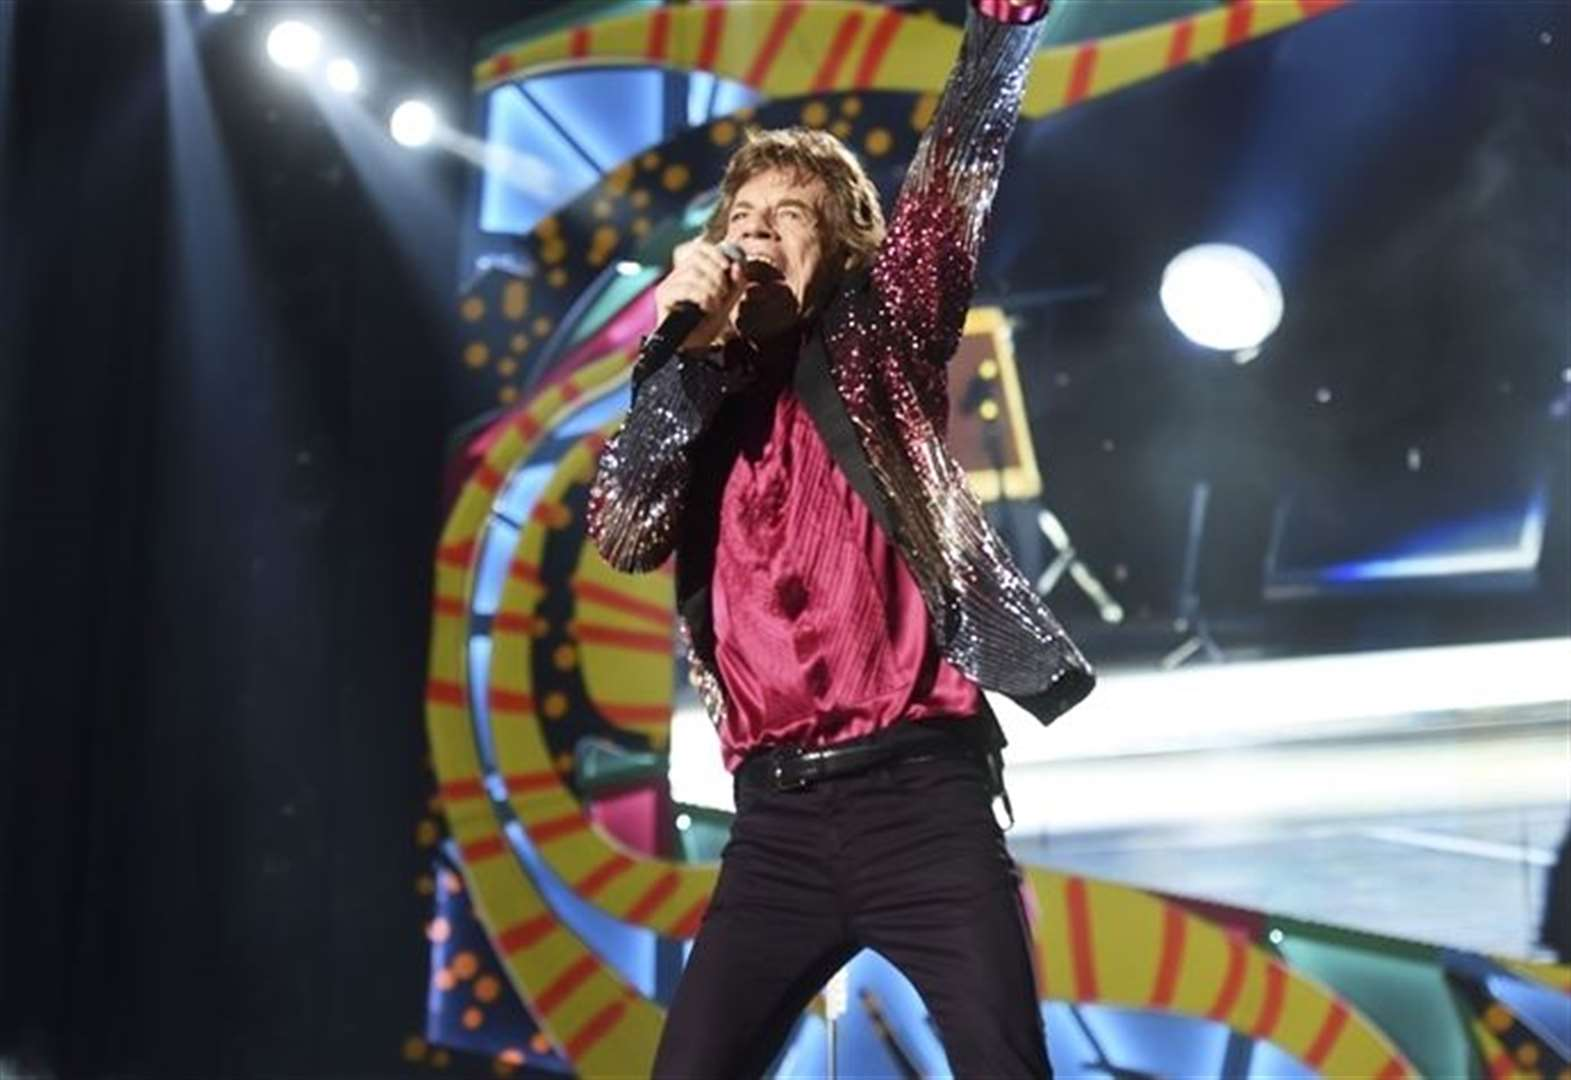 Jagger rolls back into action after heart surgery